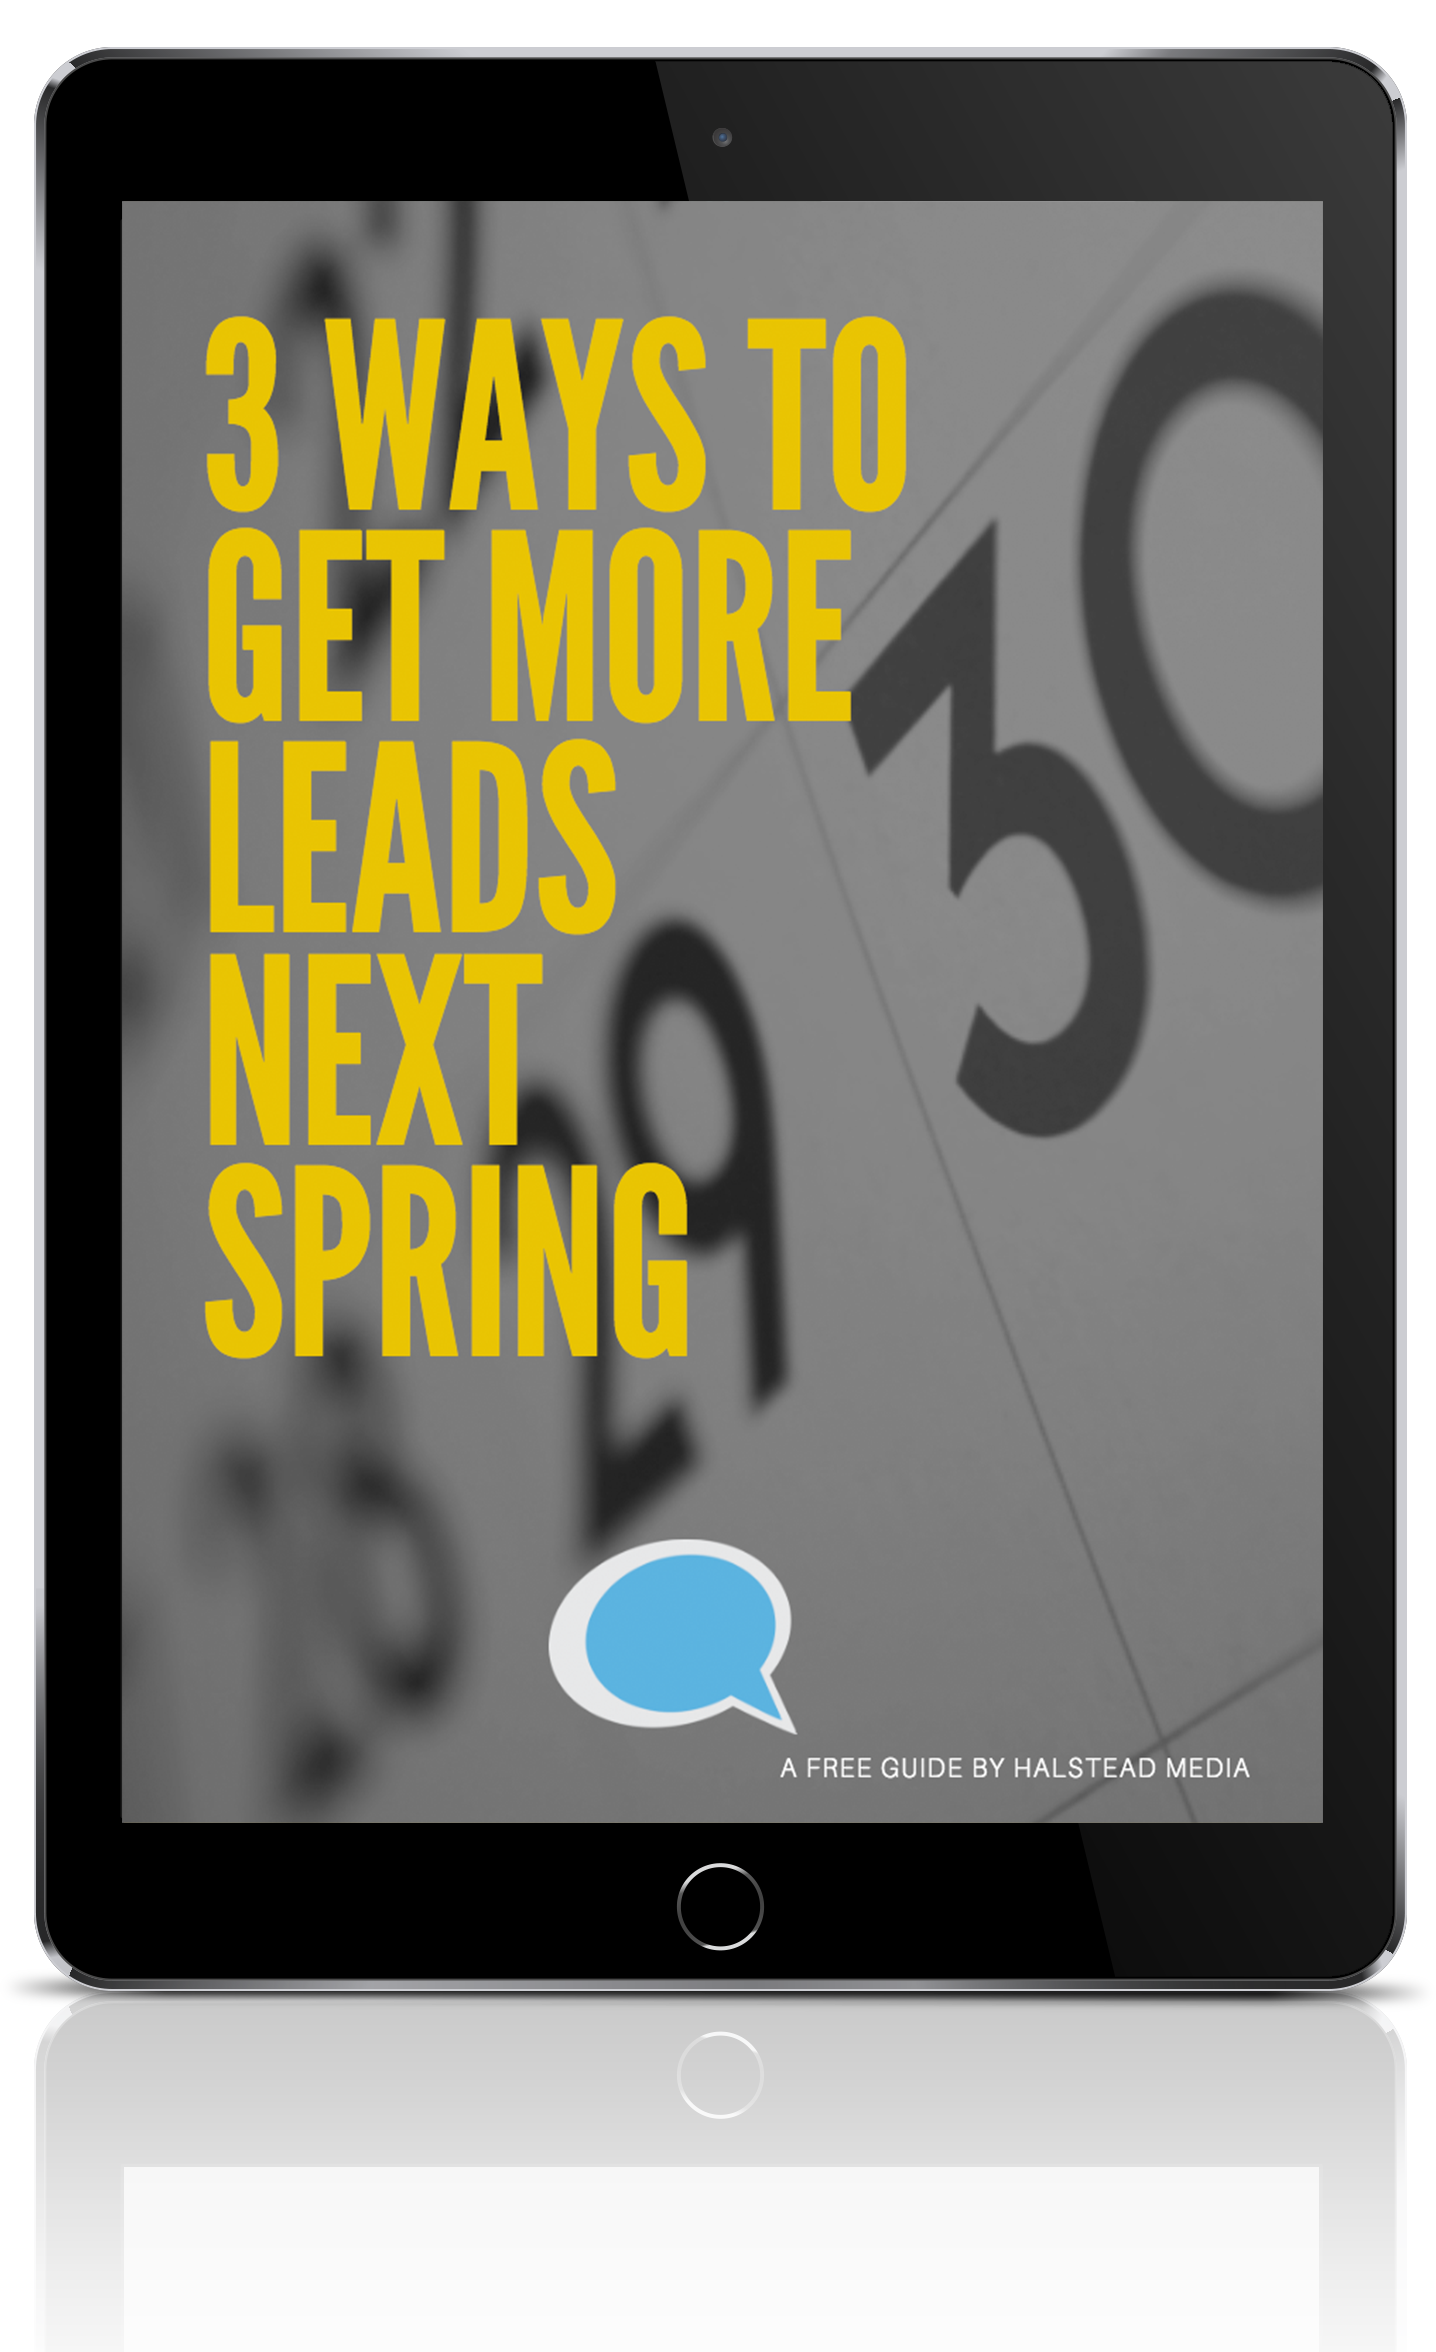 home improvement contractors: here are 3 ways to get more leads next spring